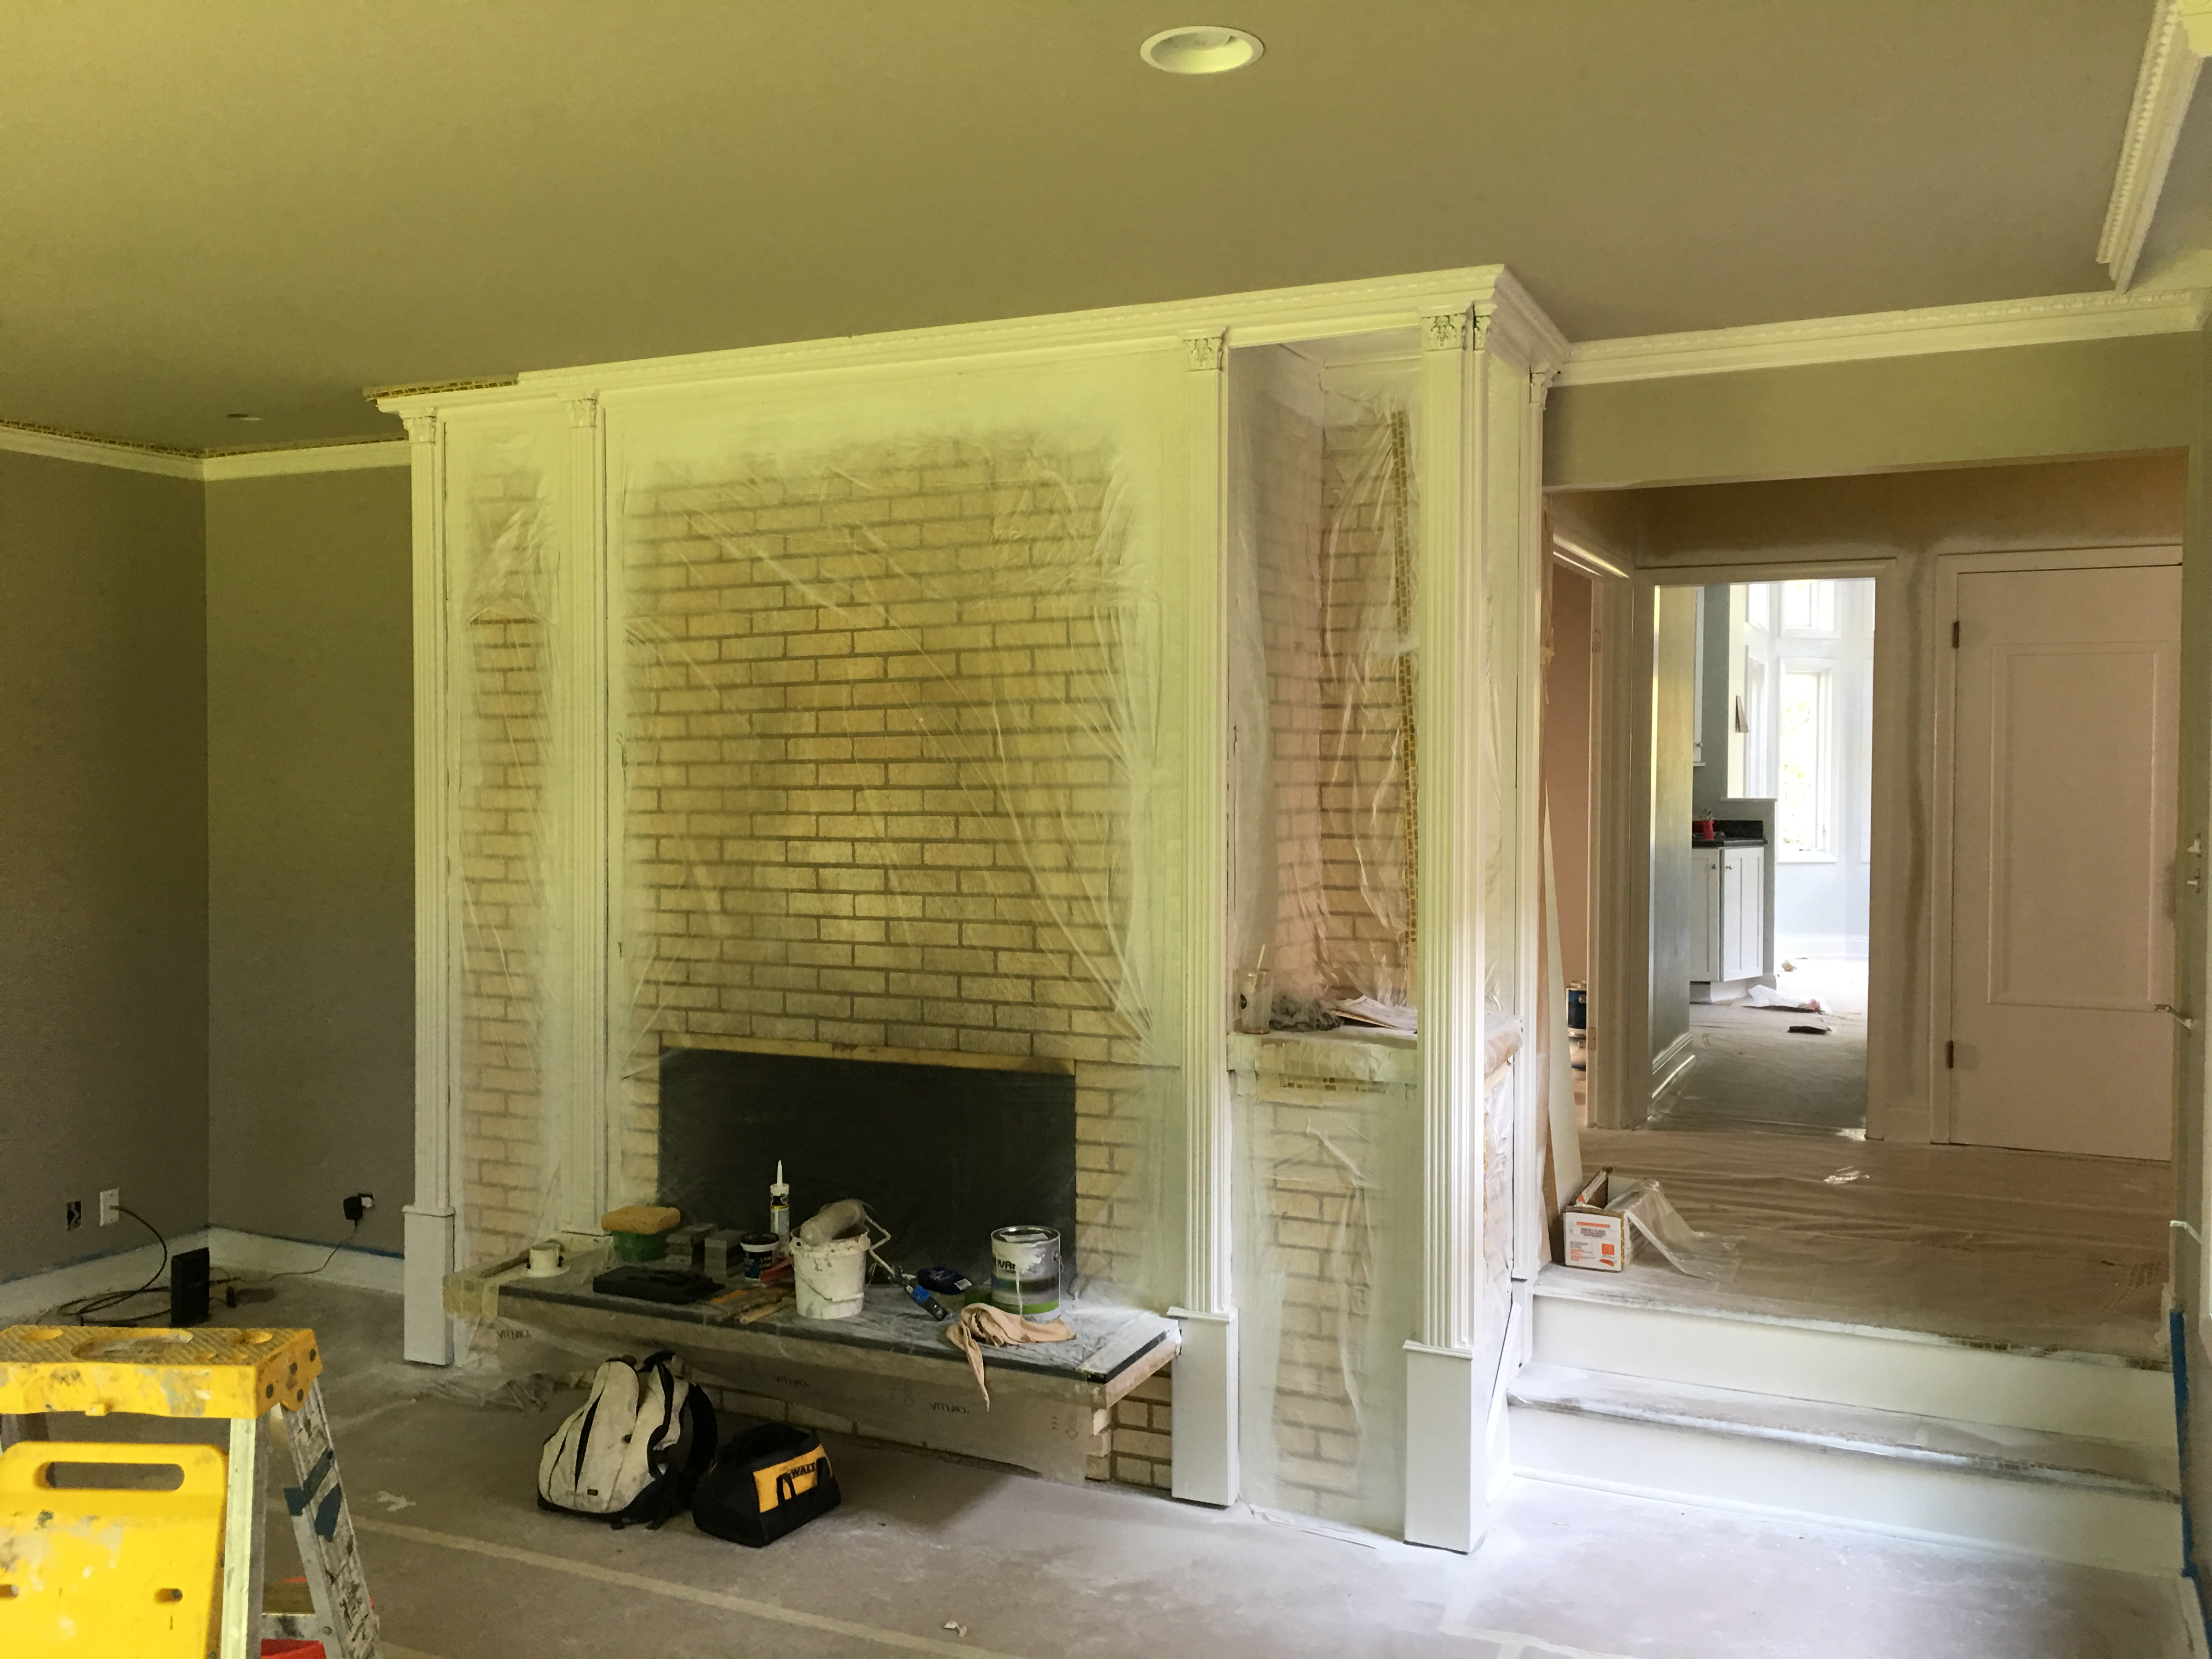 Paint or Whitewashing your fireplace